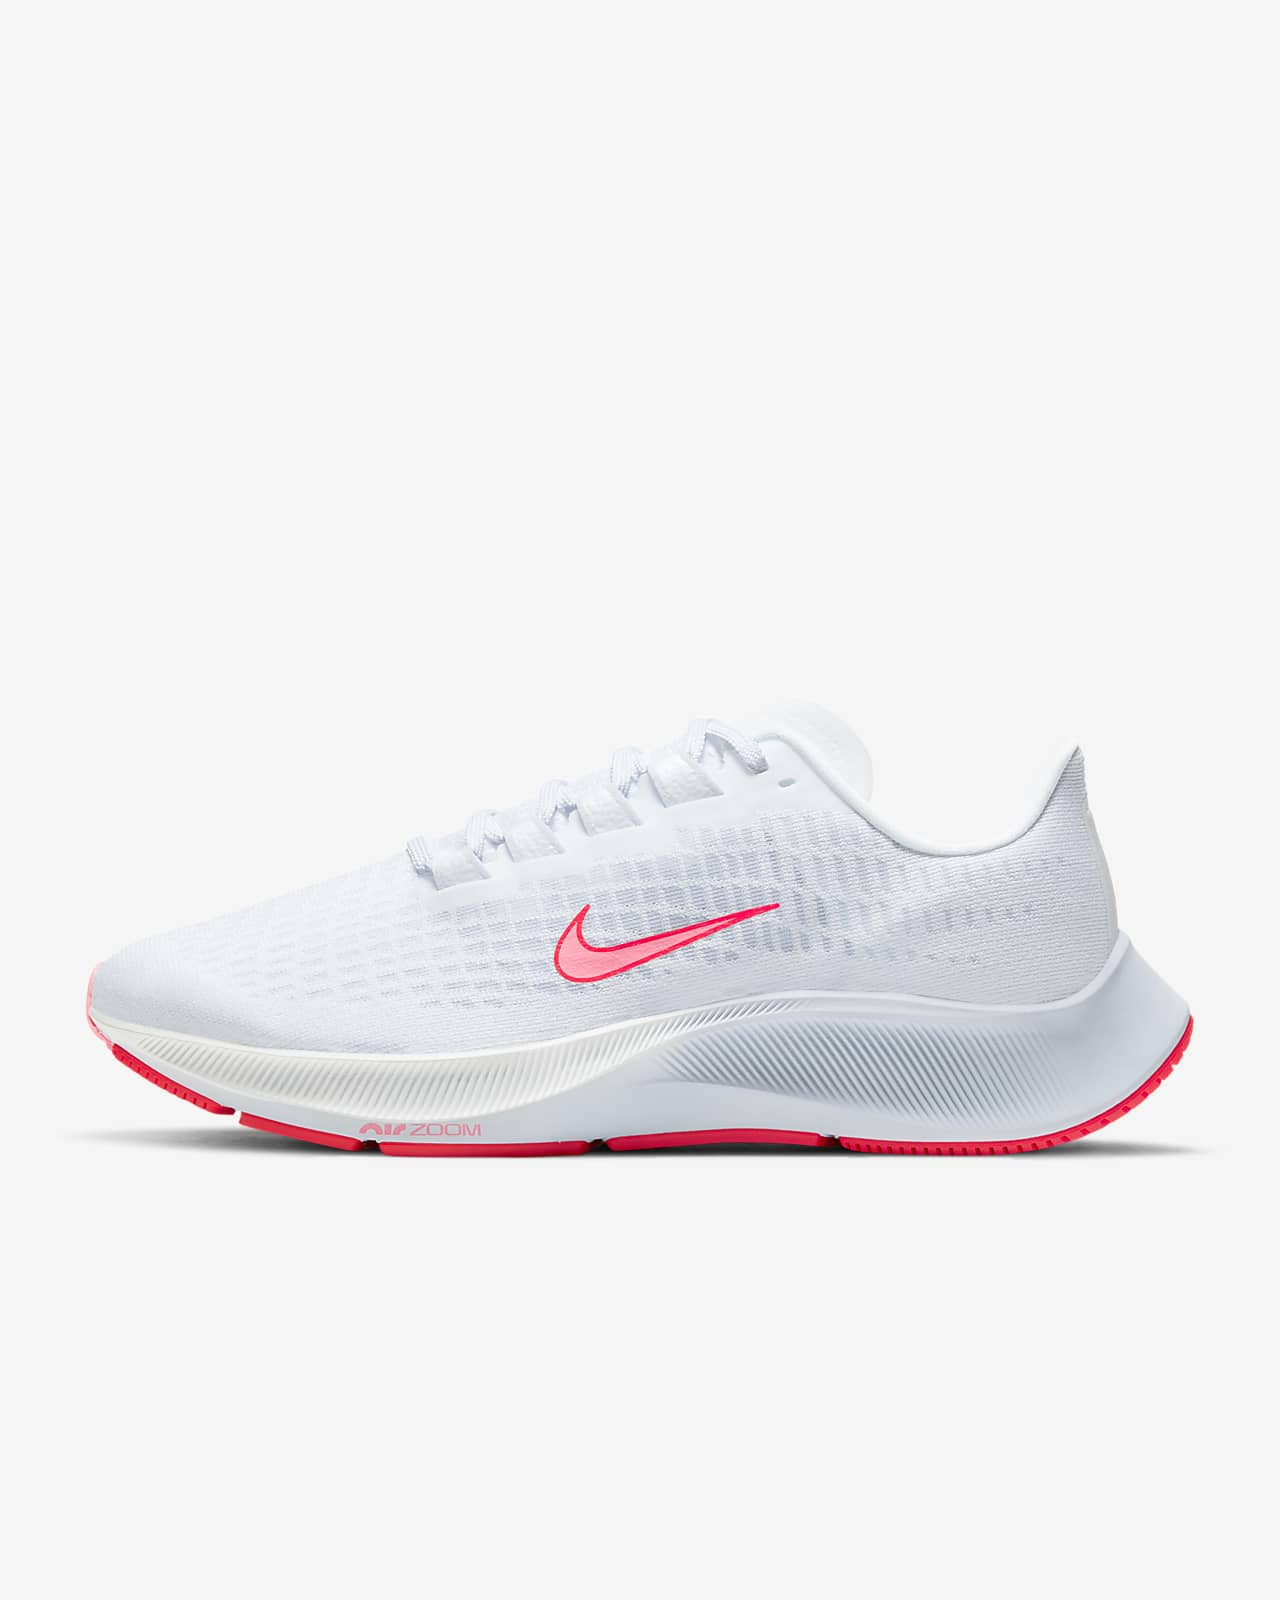 Nike Air Zoom Pegasus 37 VT Women's Running Shoe